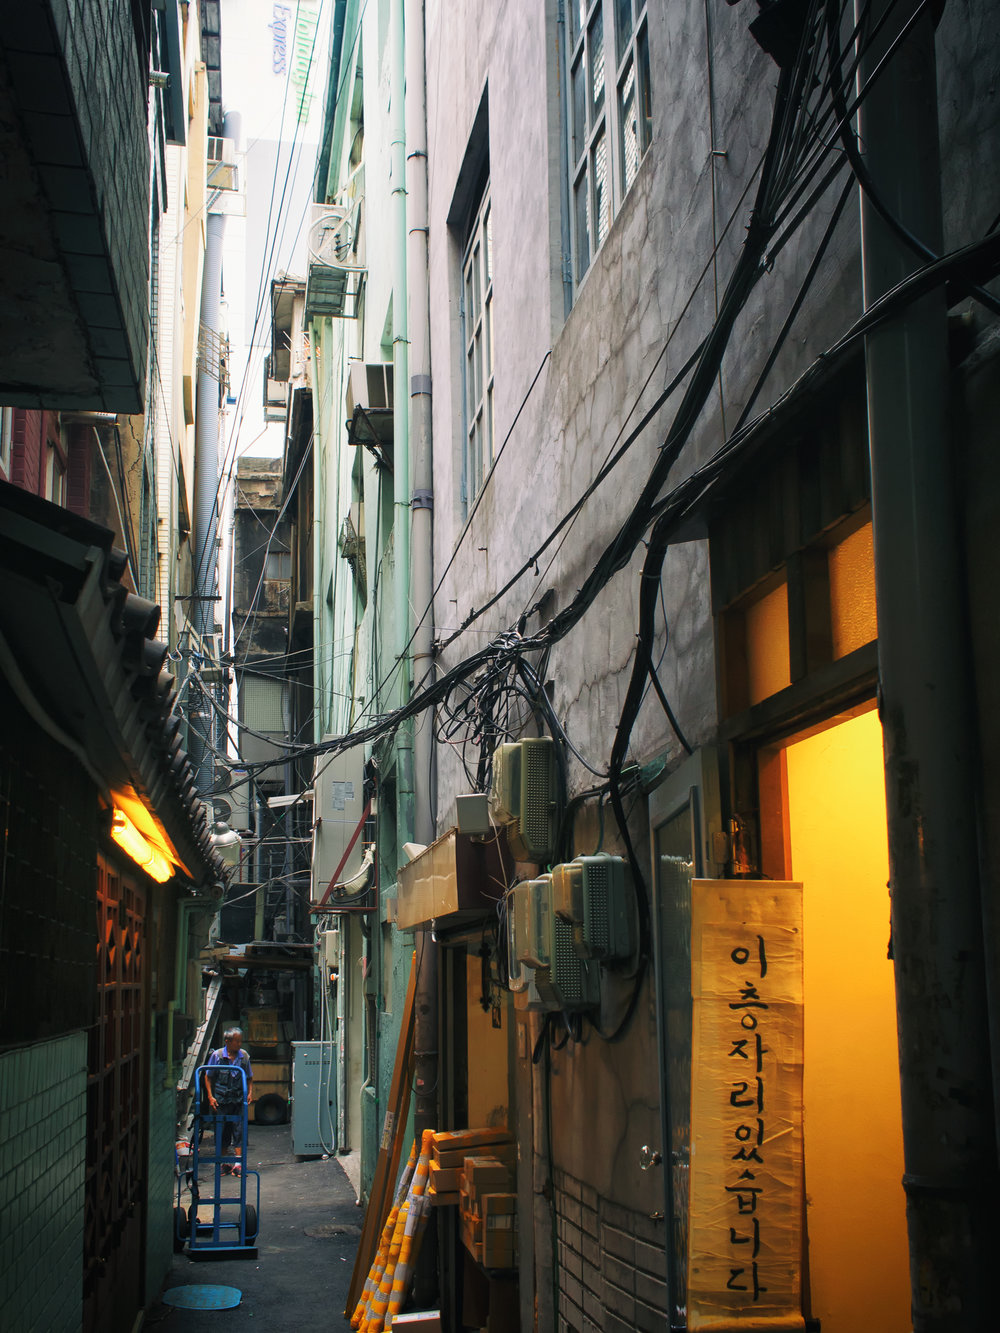 Coffee Hanyakbang is located in this narrow alley.